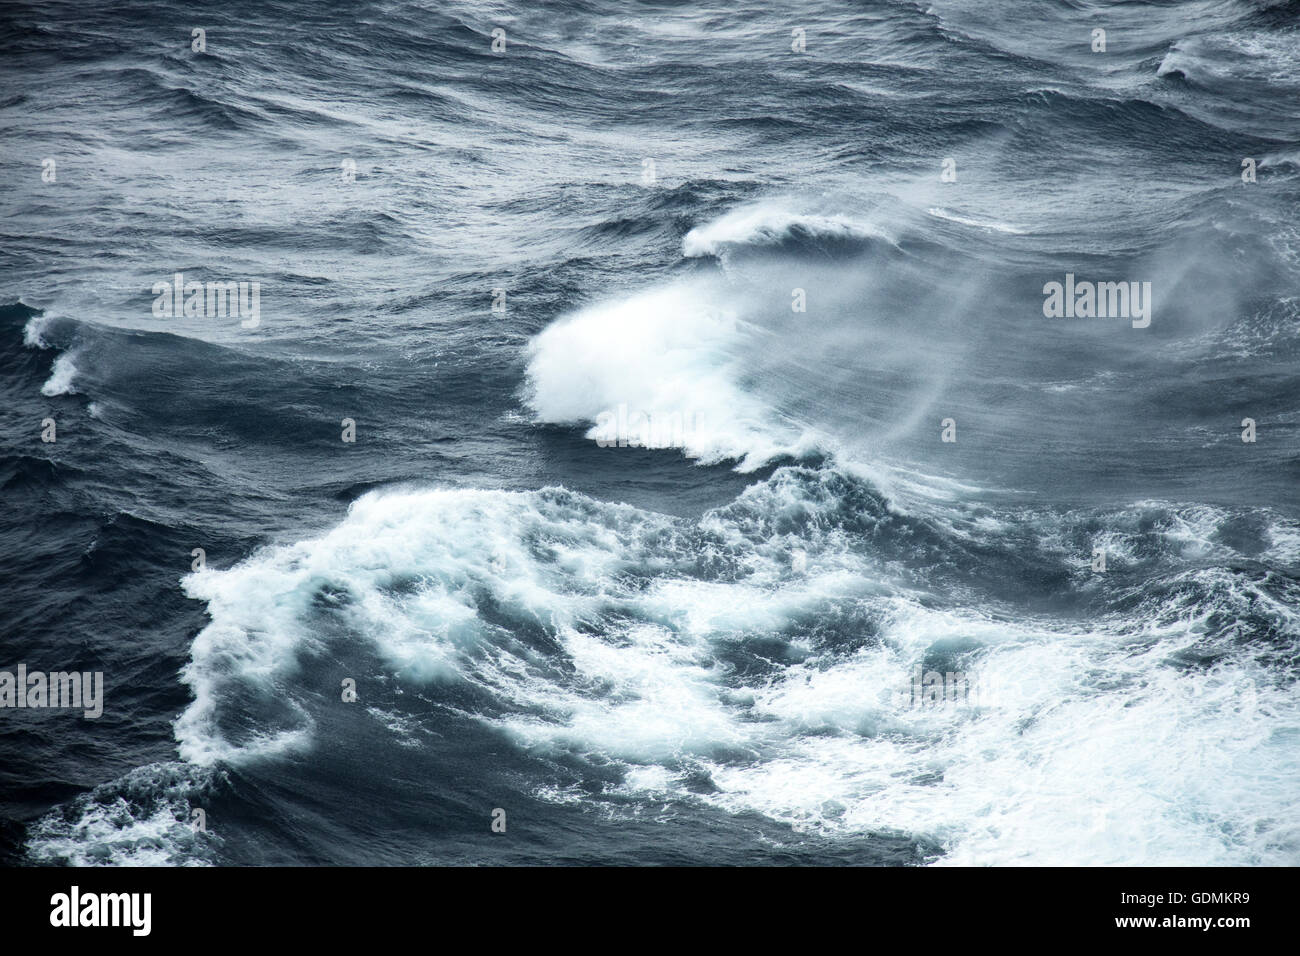 Storm force winds and rough seas - Stock Image